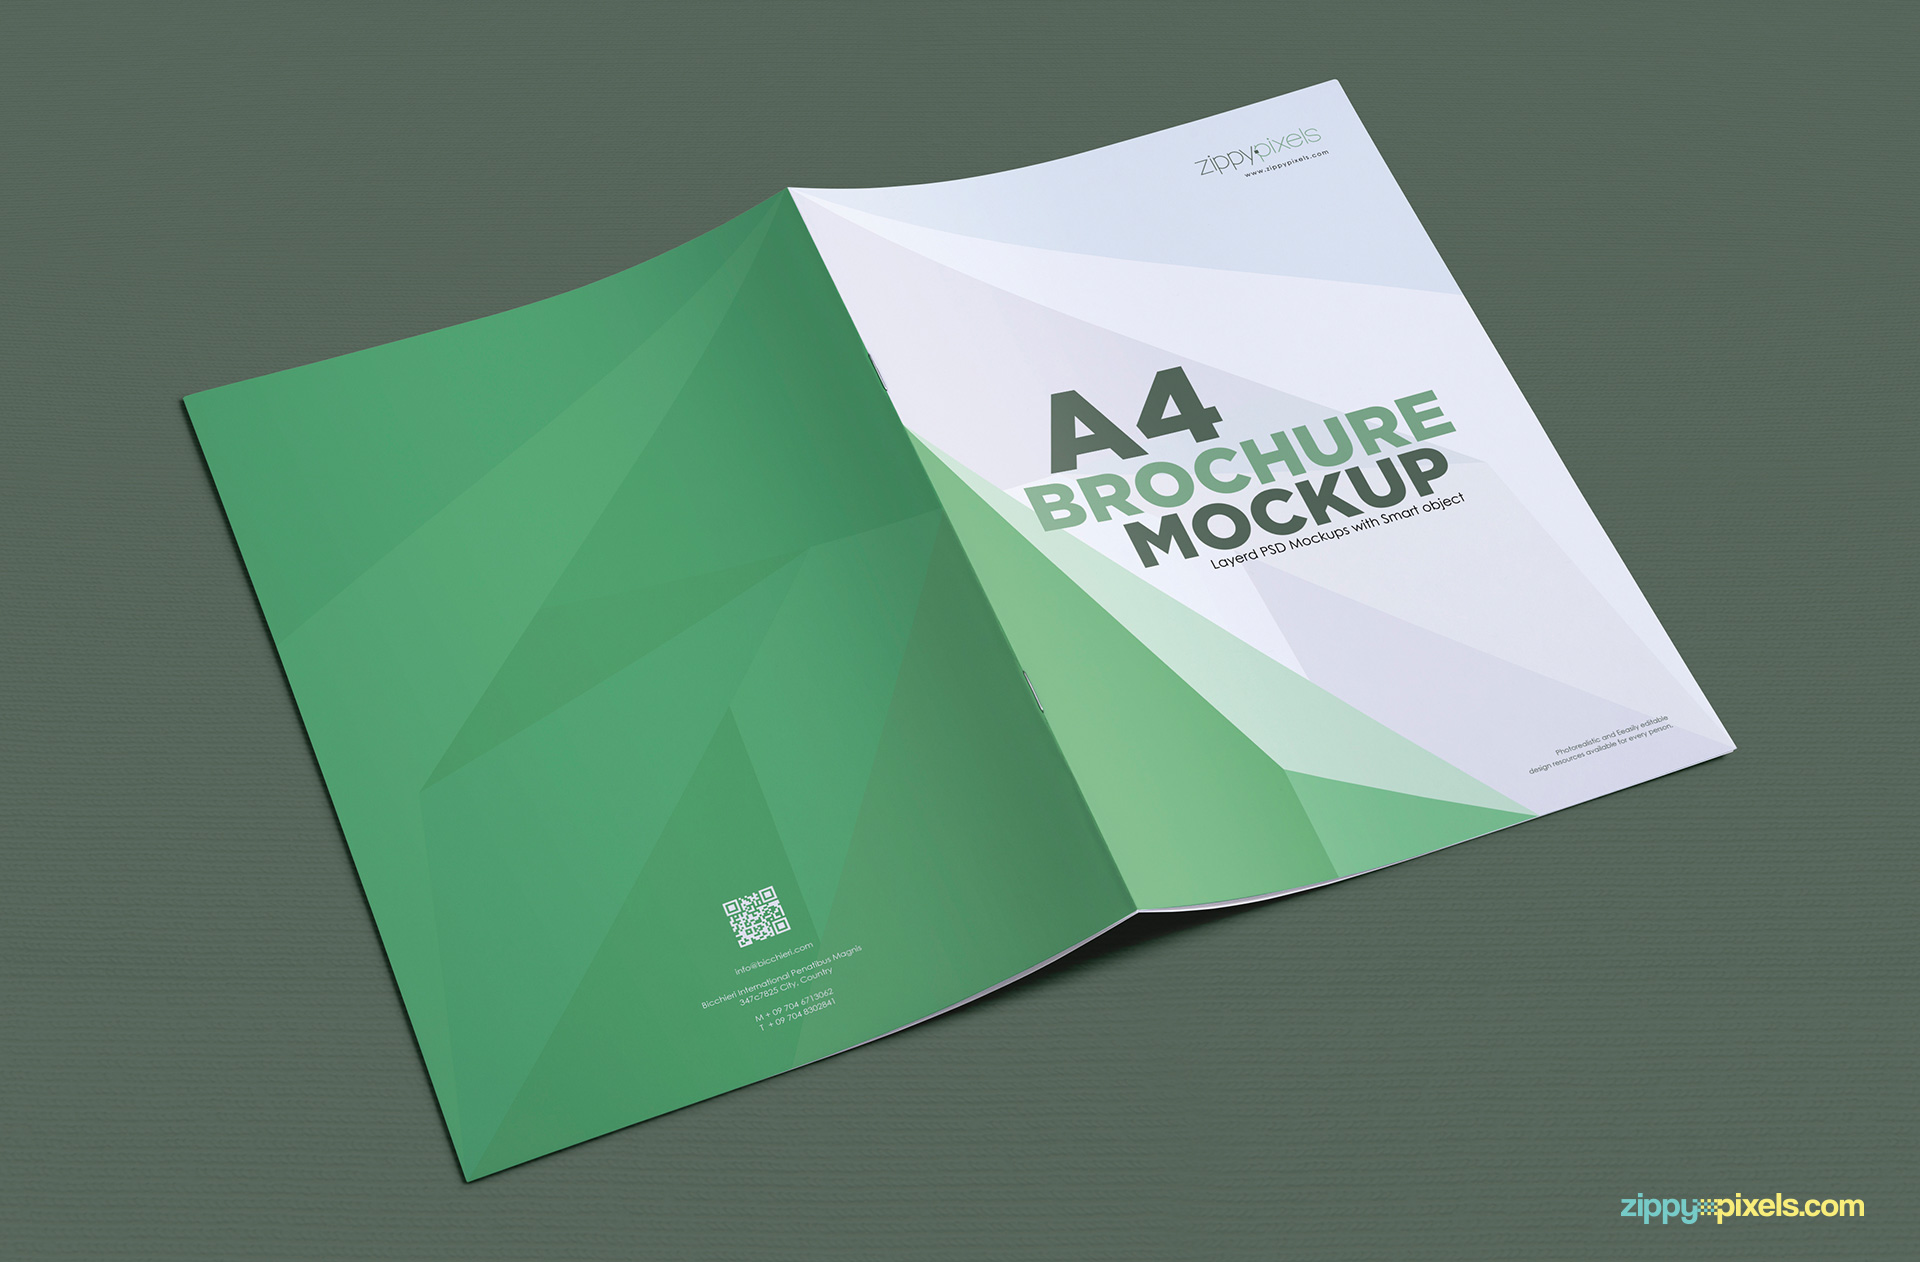 brochure psd templates - a4 brochure mockup free psd download zippypixels